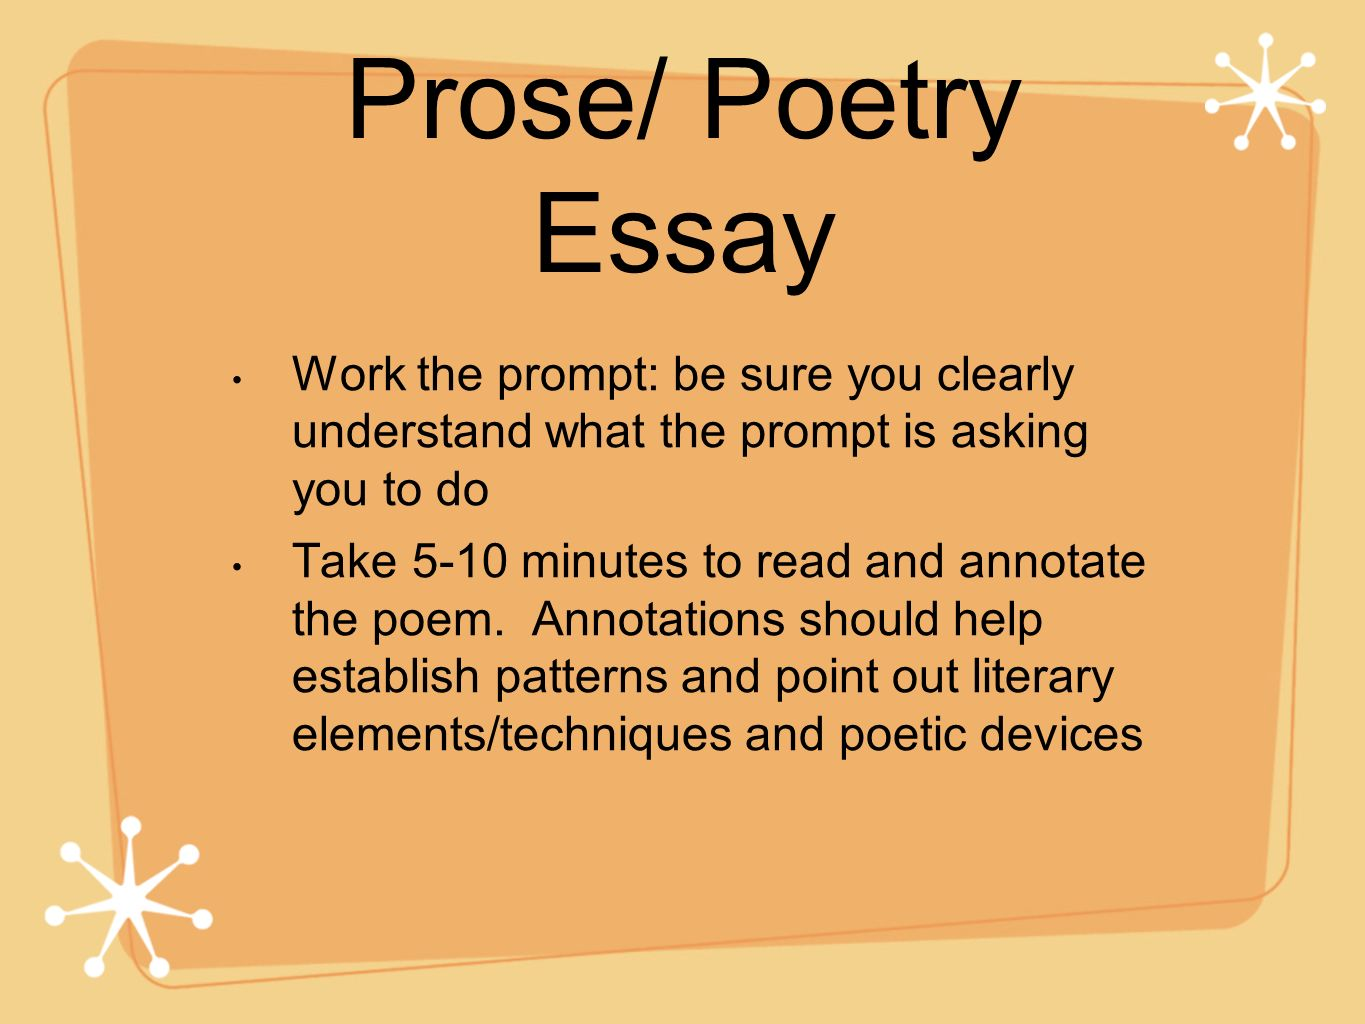 an analysis of prose poems in an interview with hass View homework help - hass-images-20th century pleasures prose on poetry from l&s 1 at berkeley ggawmwruwrfl other books by robert hass poetry ' century sun.